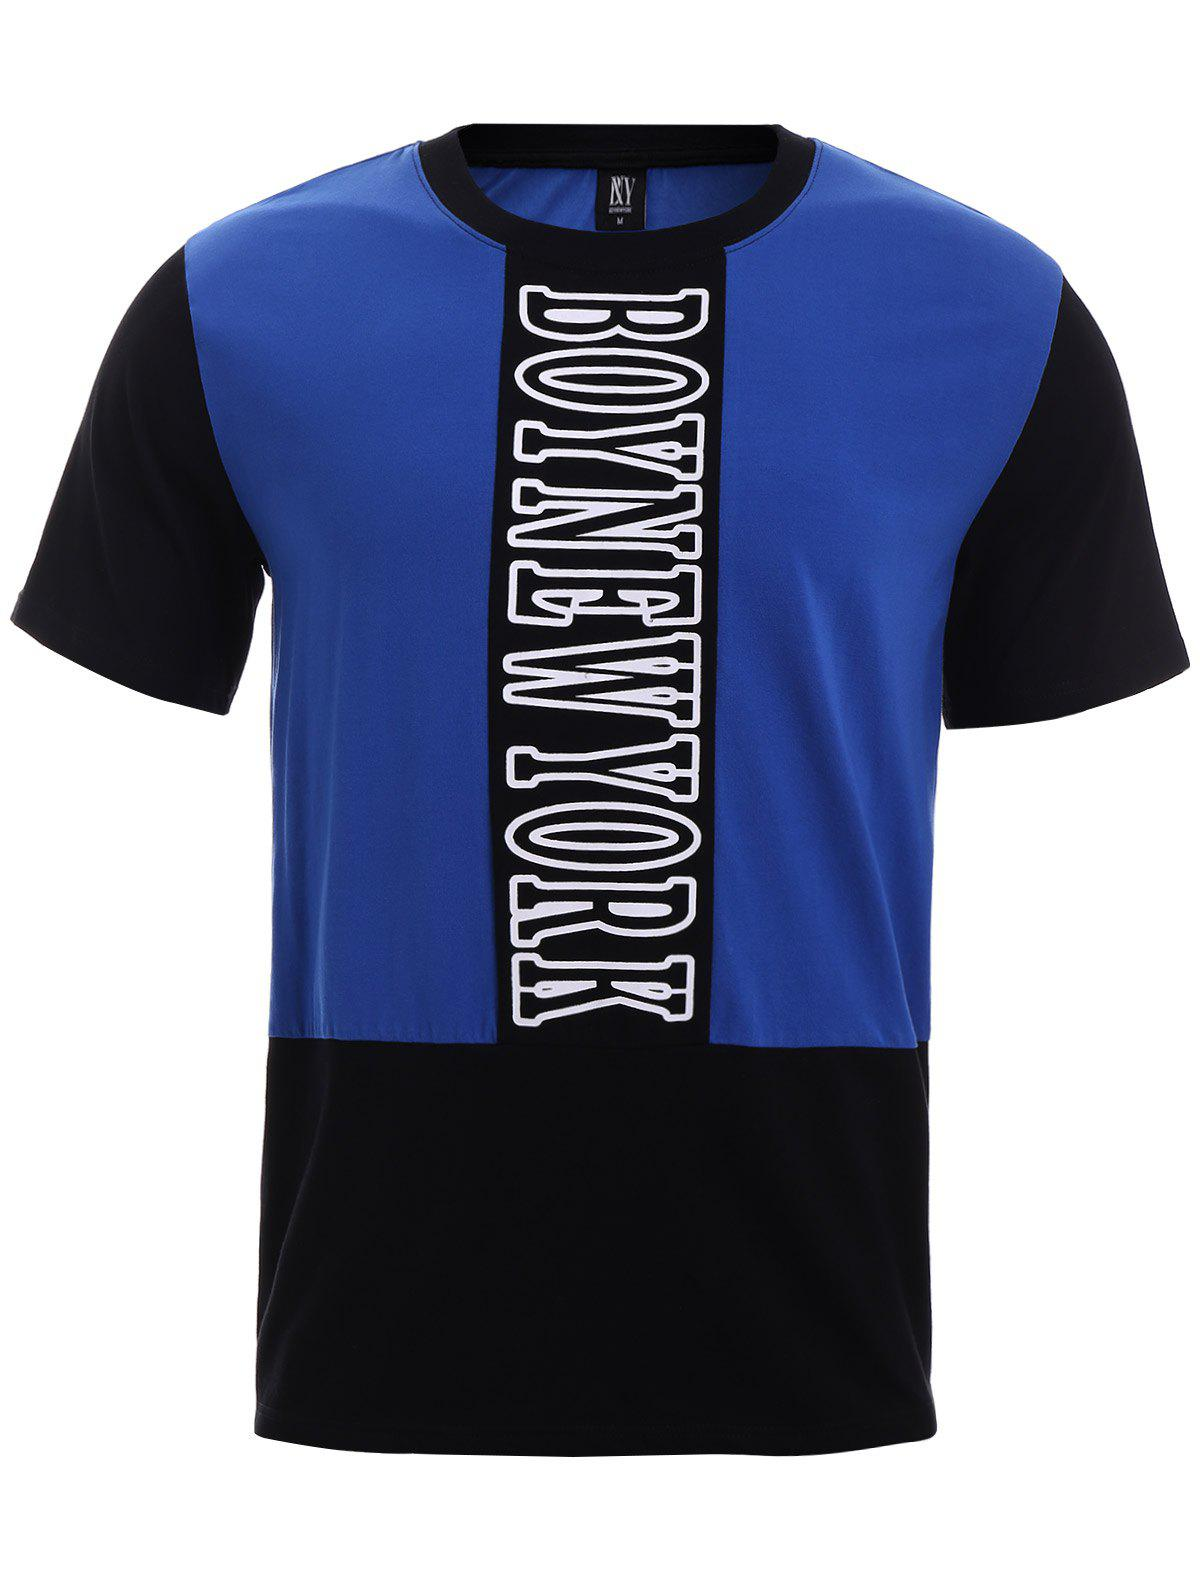 BoyNewYork Color Block Short Sleeves T-Shirt - BLUE/BLACK XL